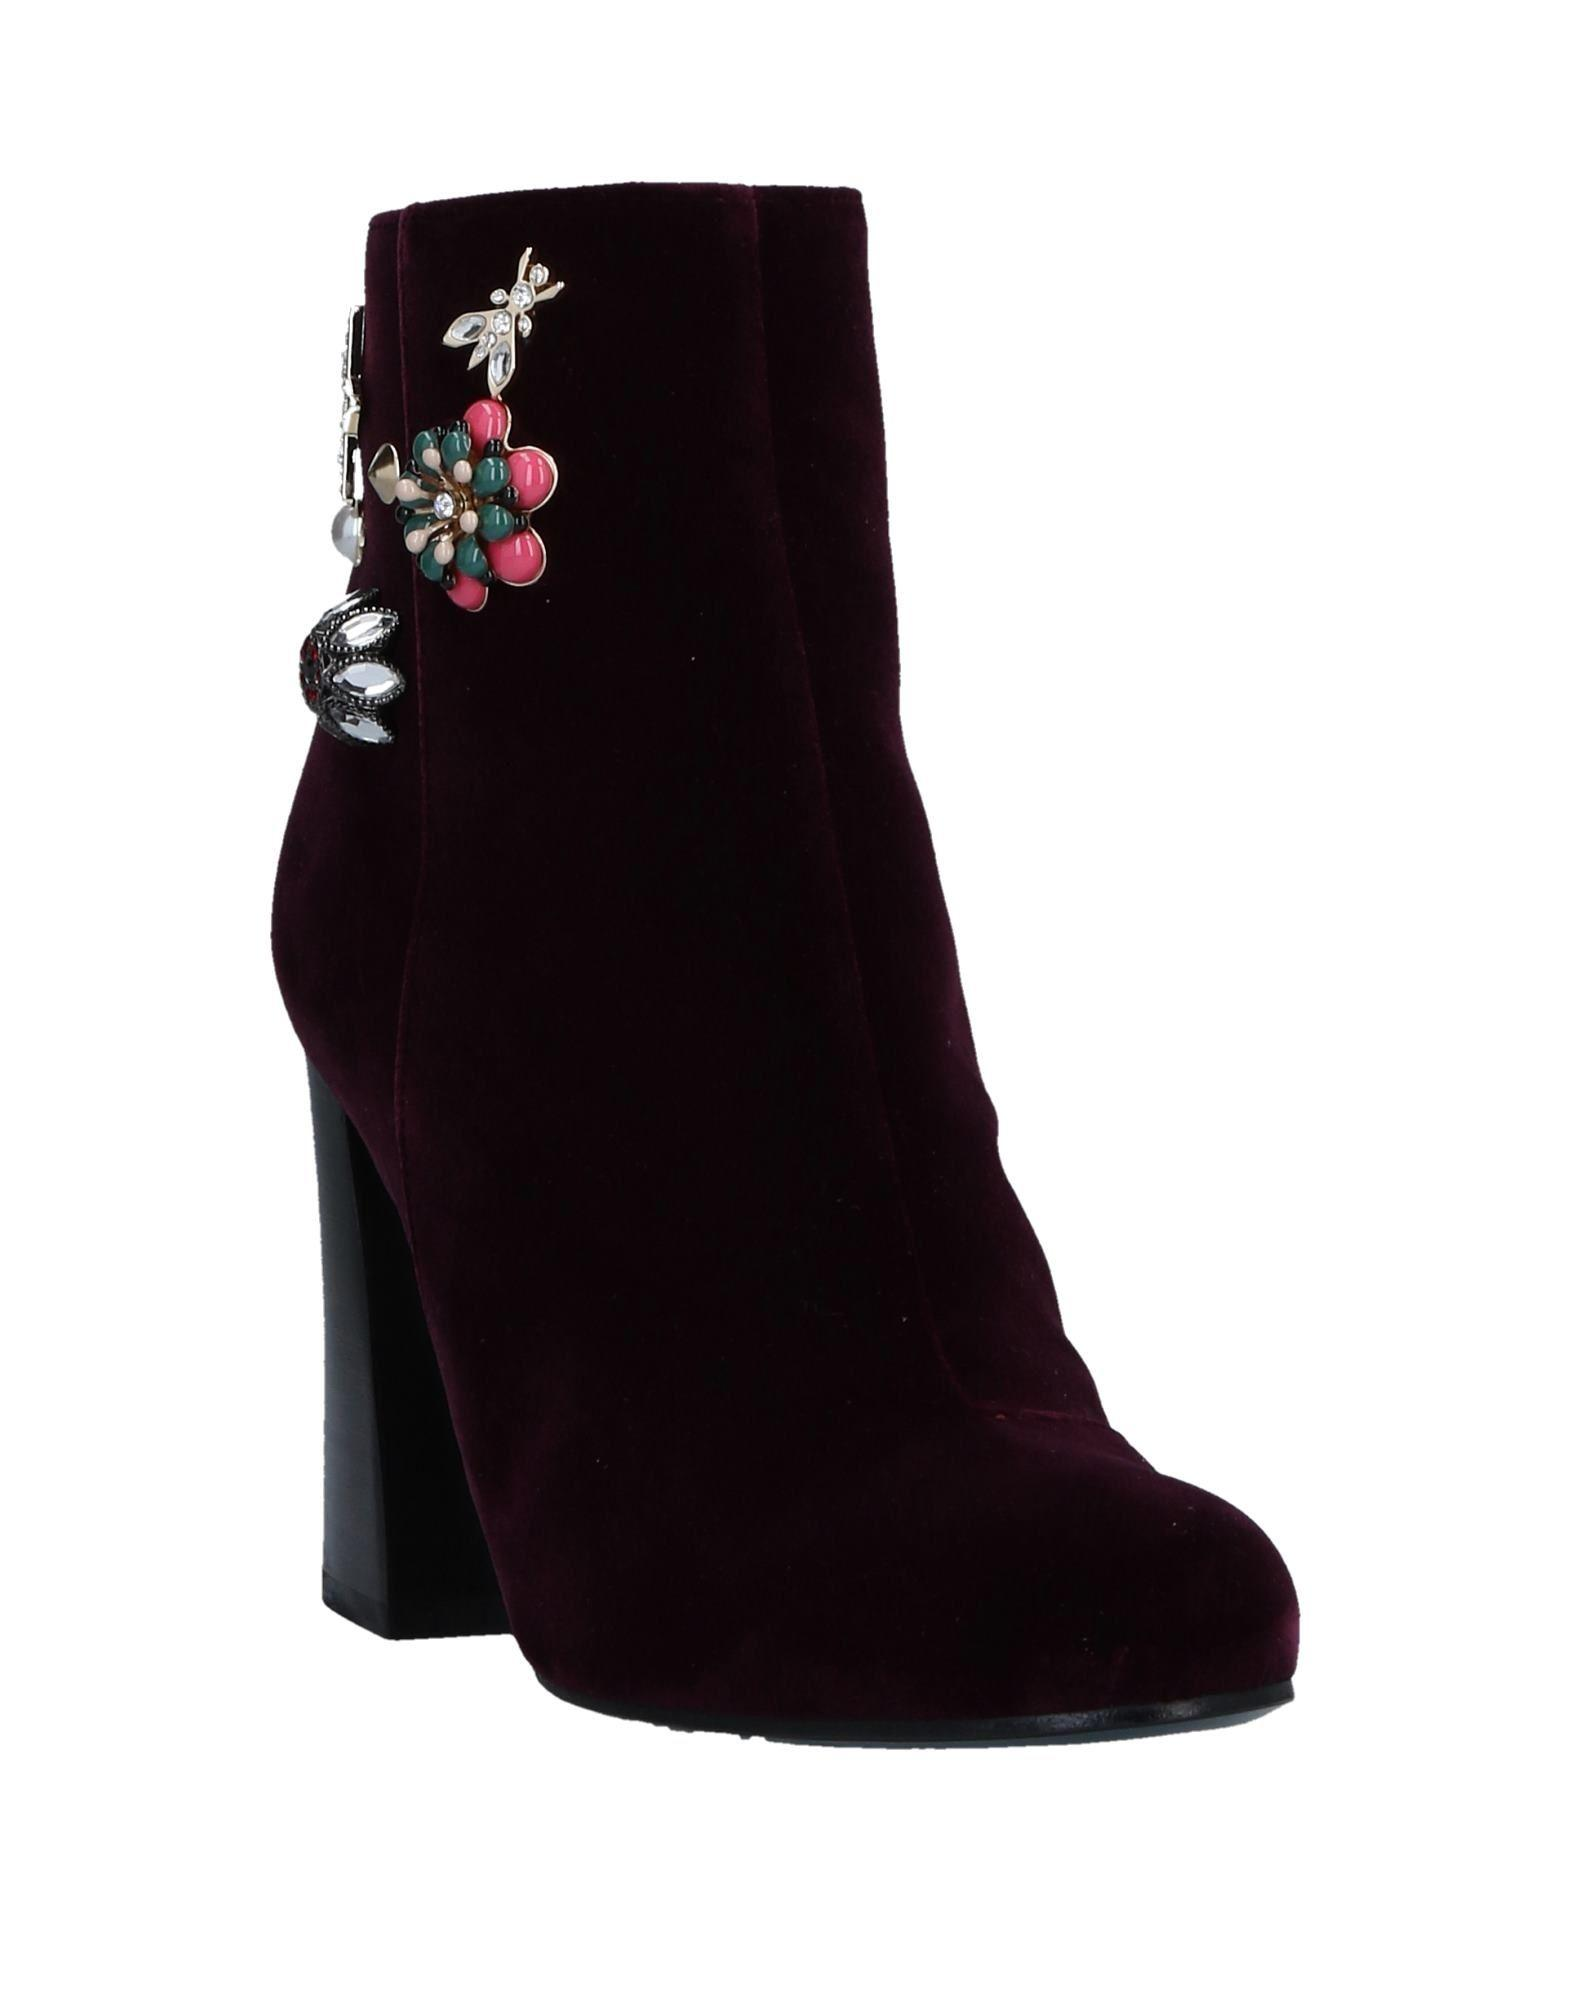 Patrizia Pepe Velvet Ankle Boots in Purple